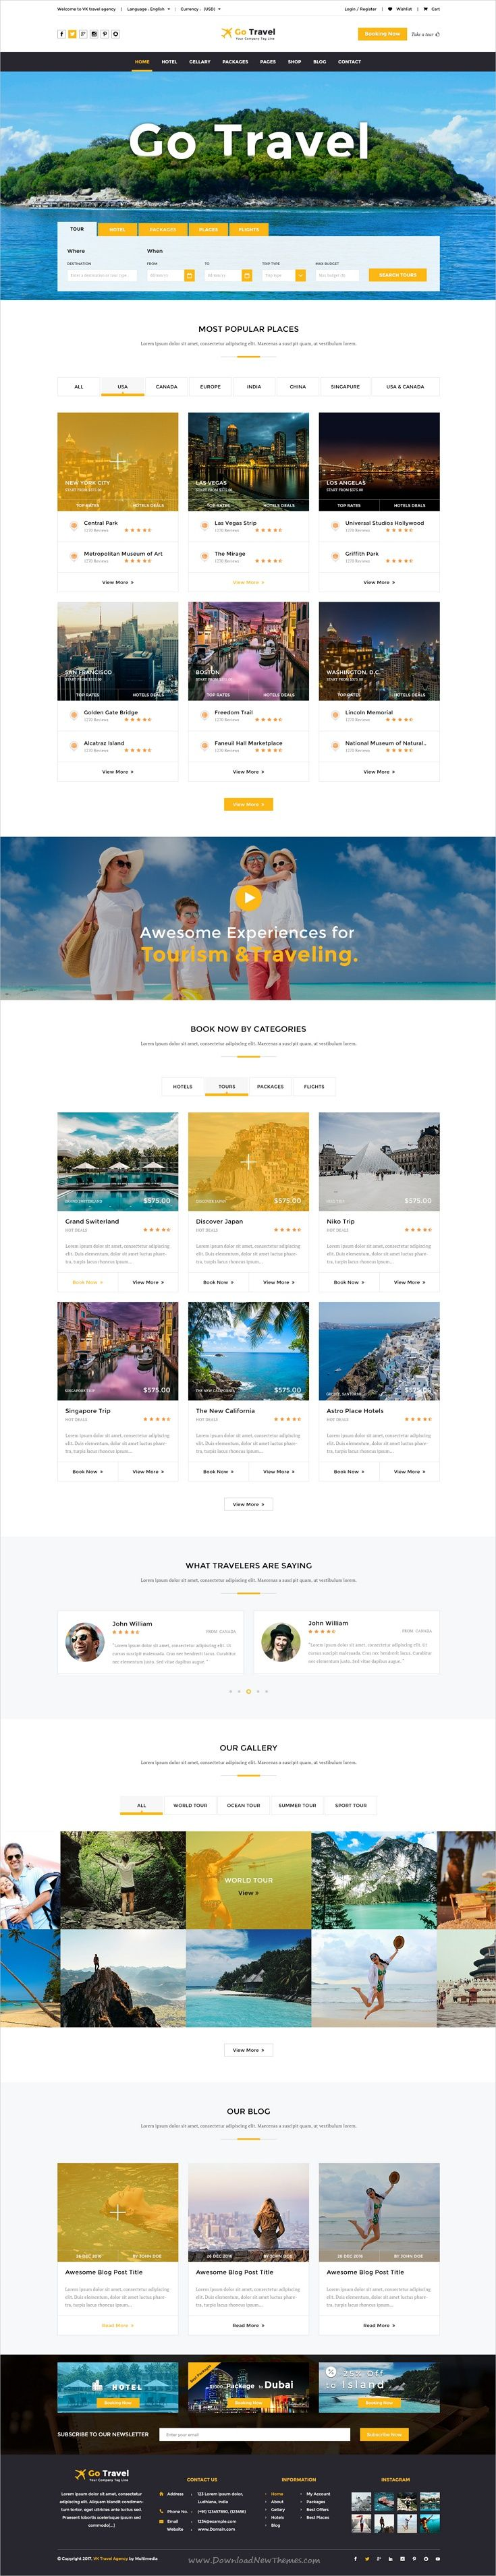 Go travel is a wonderful #PSD template for #travel and #tour agencies online booking website with 4 homepage layouts and 55+ organized PSD files download now➩ https://themeforest.net/item/travel-psd-template/19586859?ref=Datasata